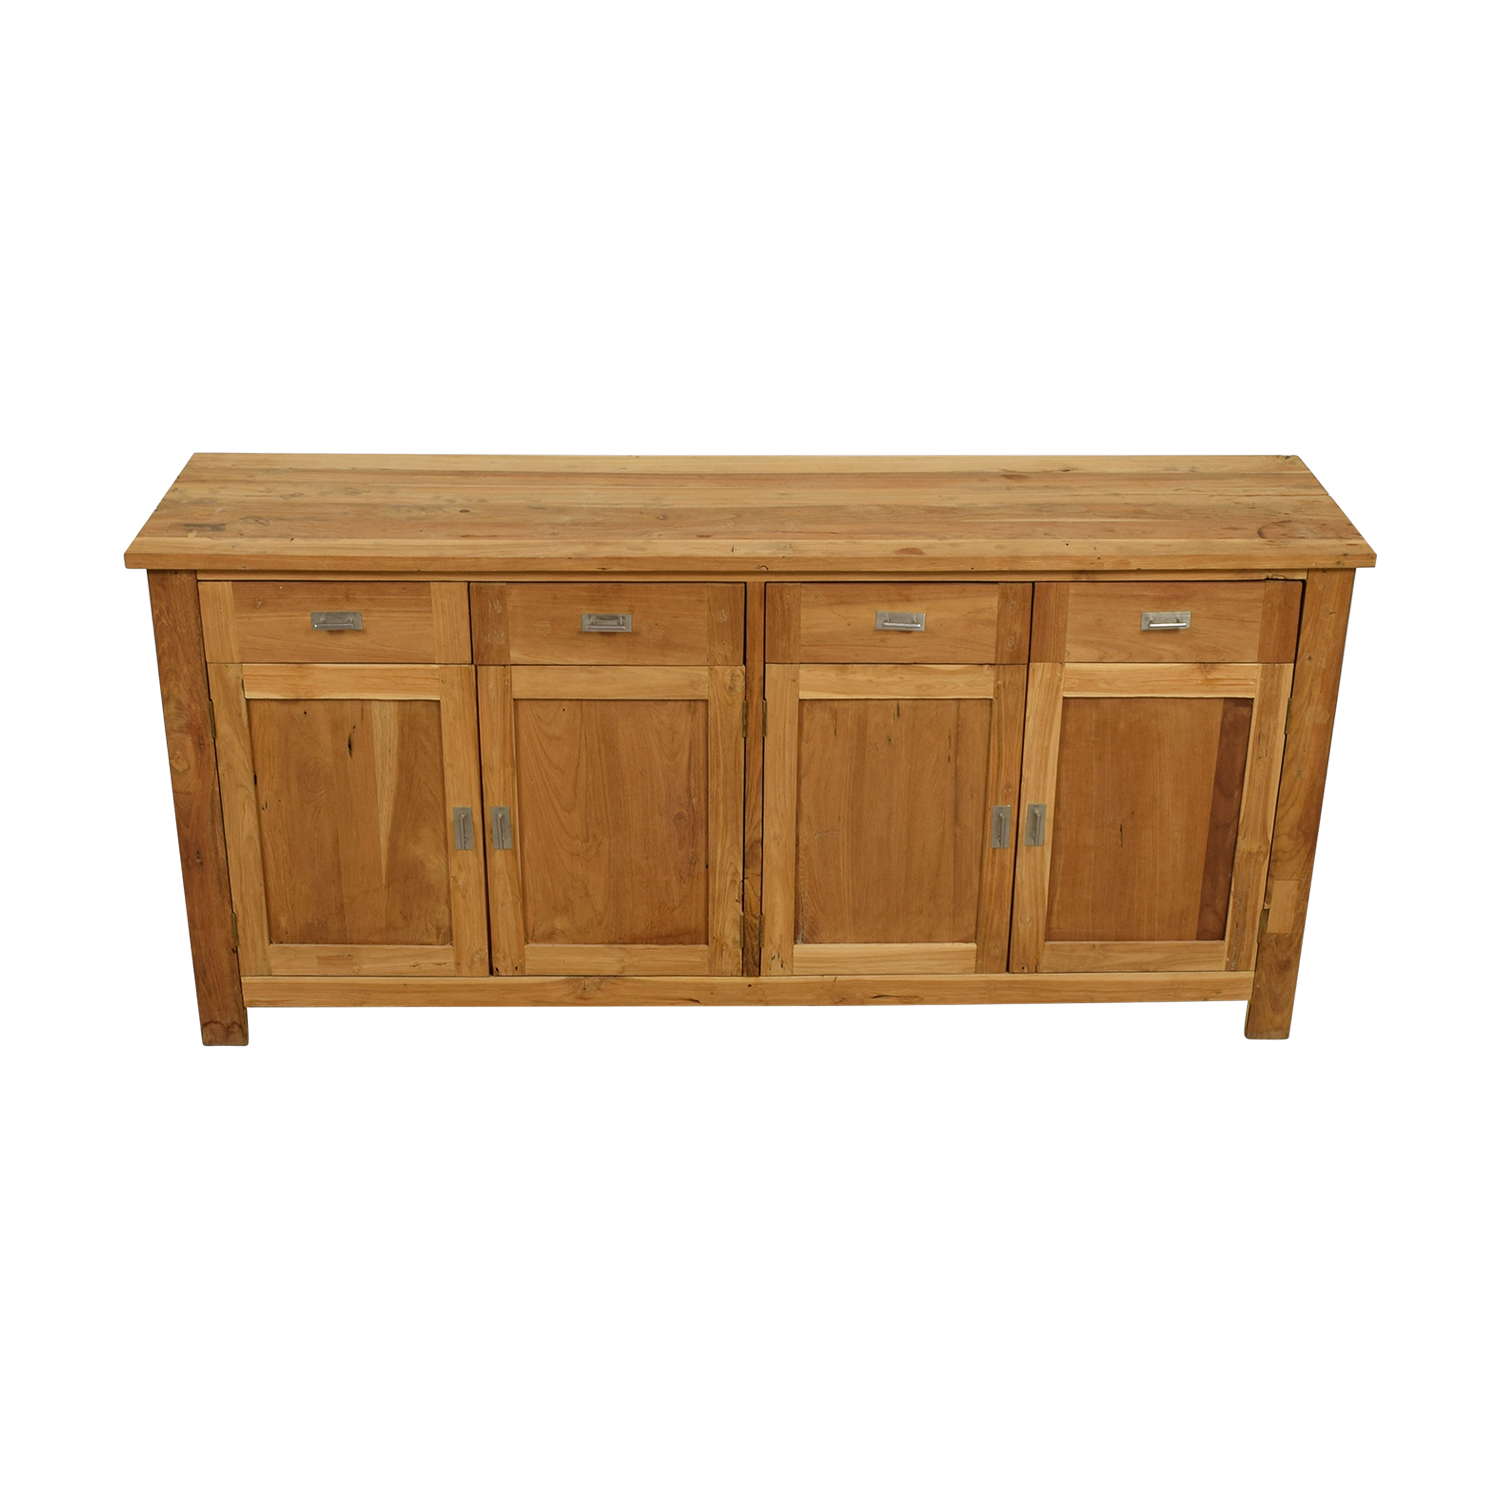 Rustic Pine Four-Drawer Sideboard second hand